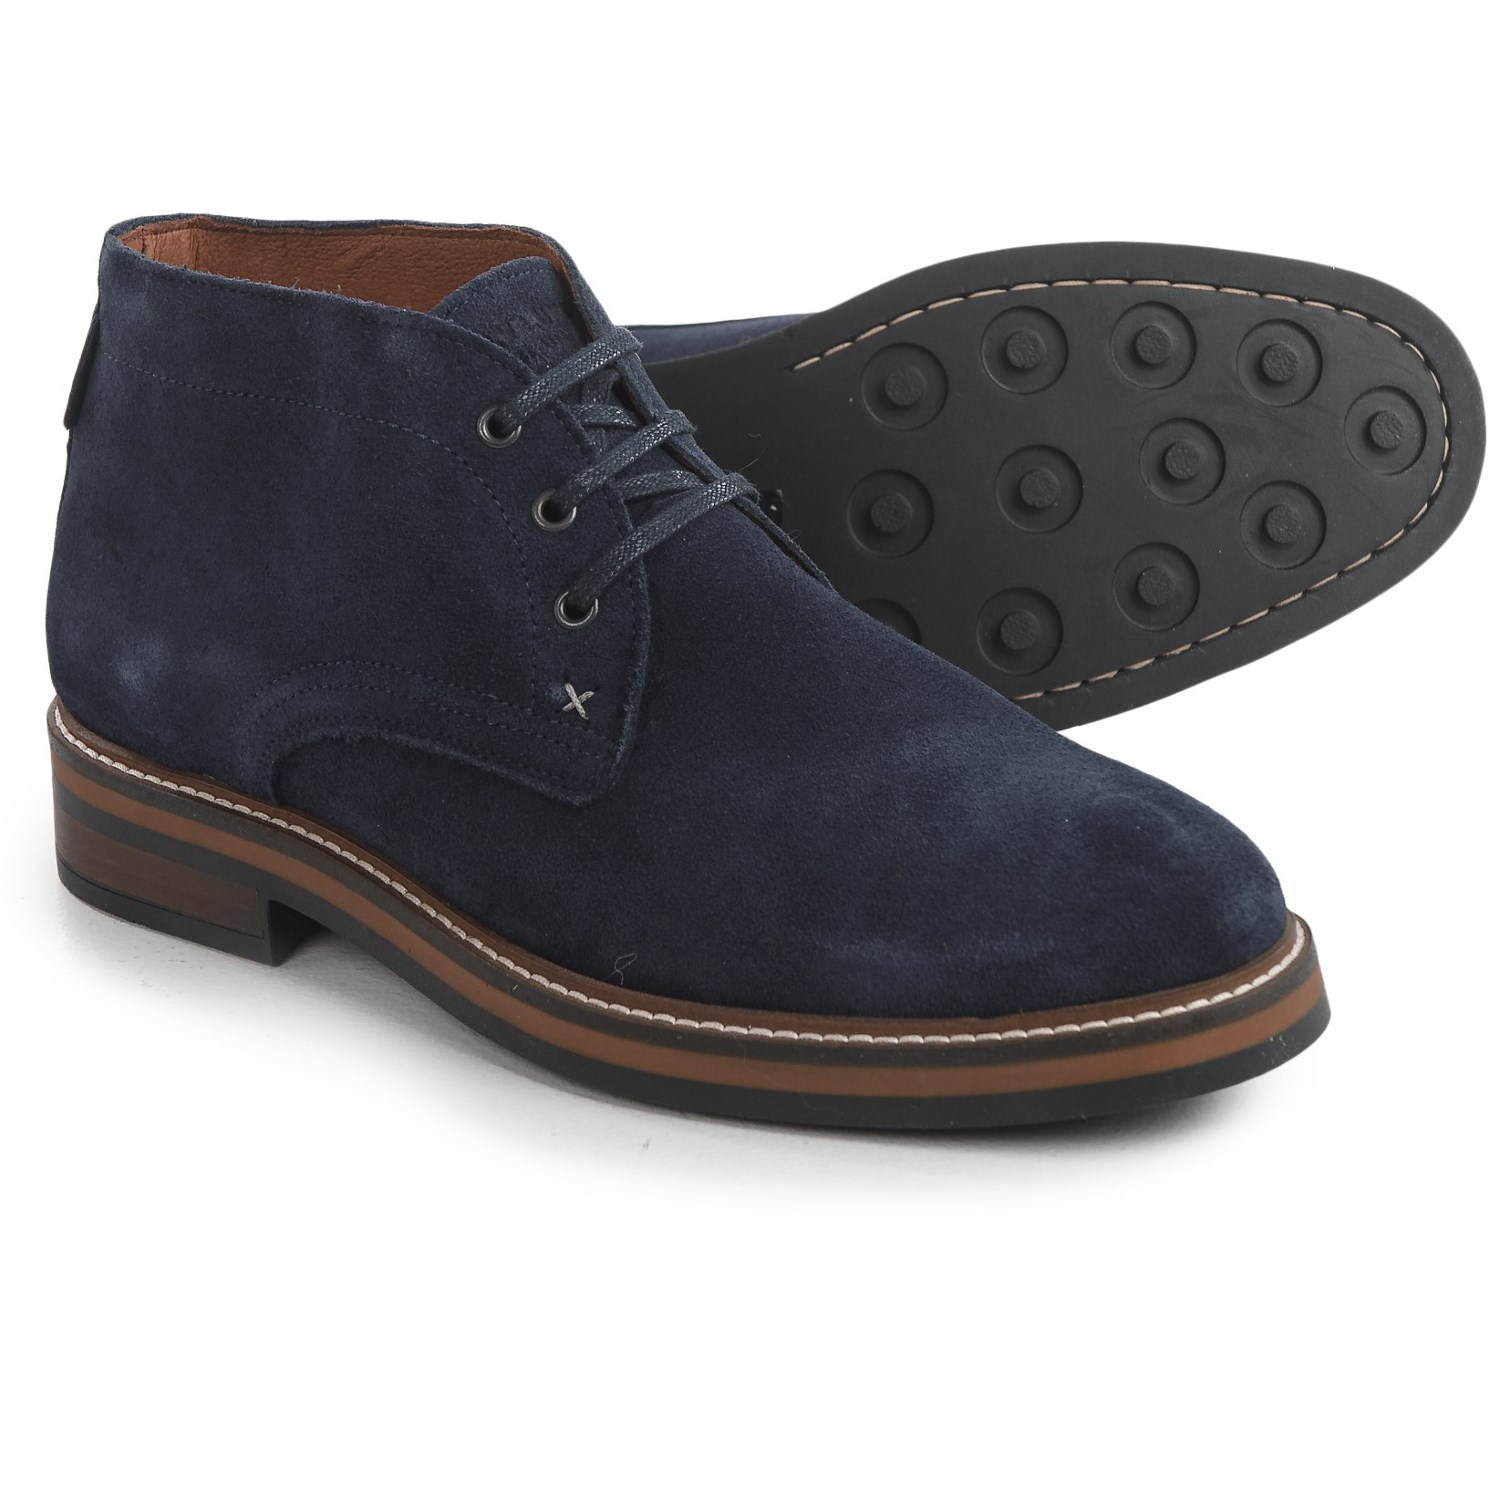 Wolverine No. 1883 Francisco Chukka Boots (For Men) - Save 57%